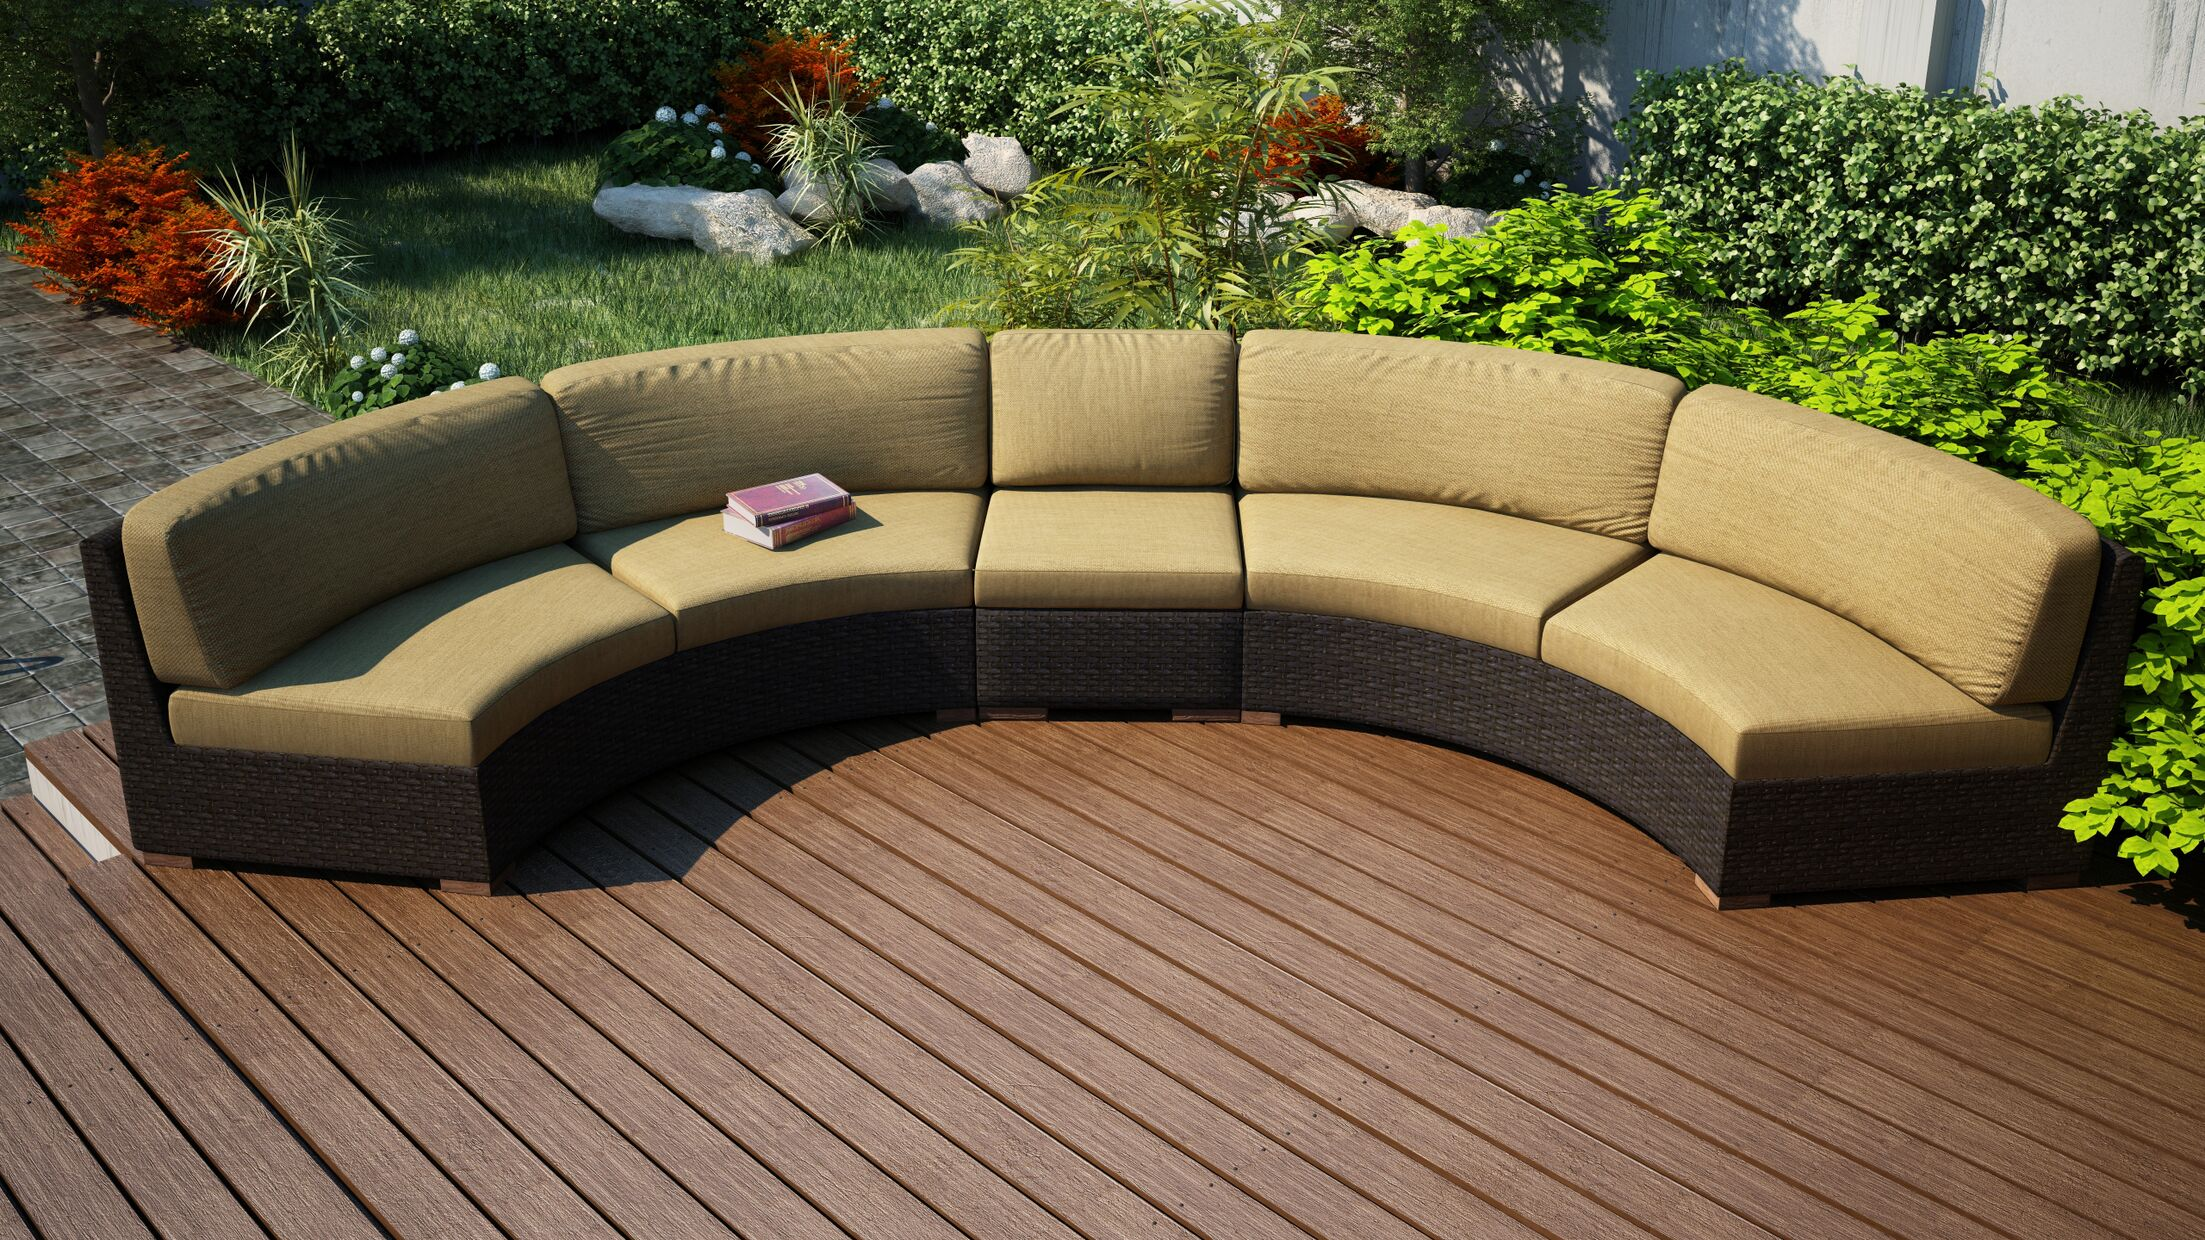 Arden Extended Curved Patio Sectional with Cushions Fabric: Beige